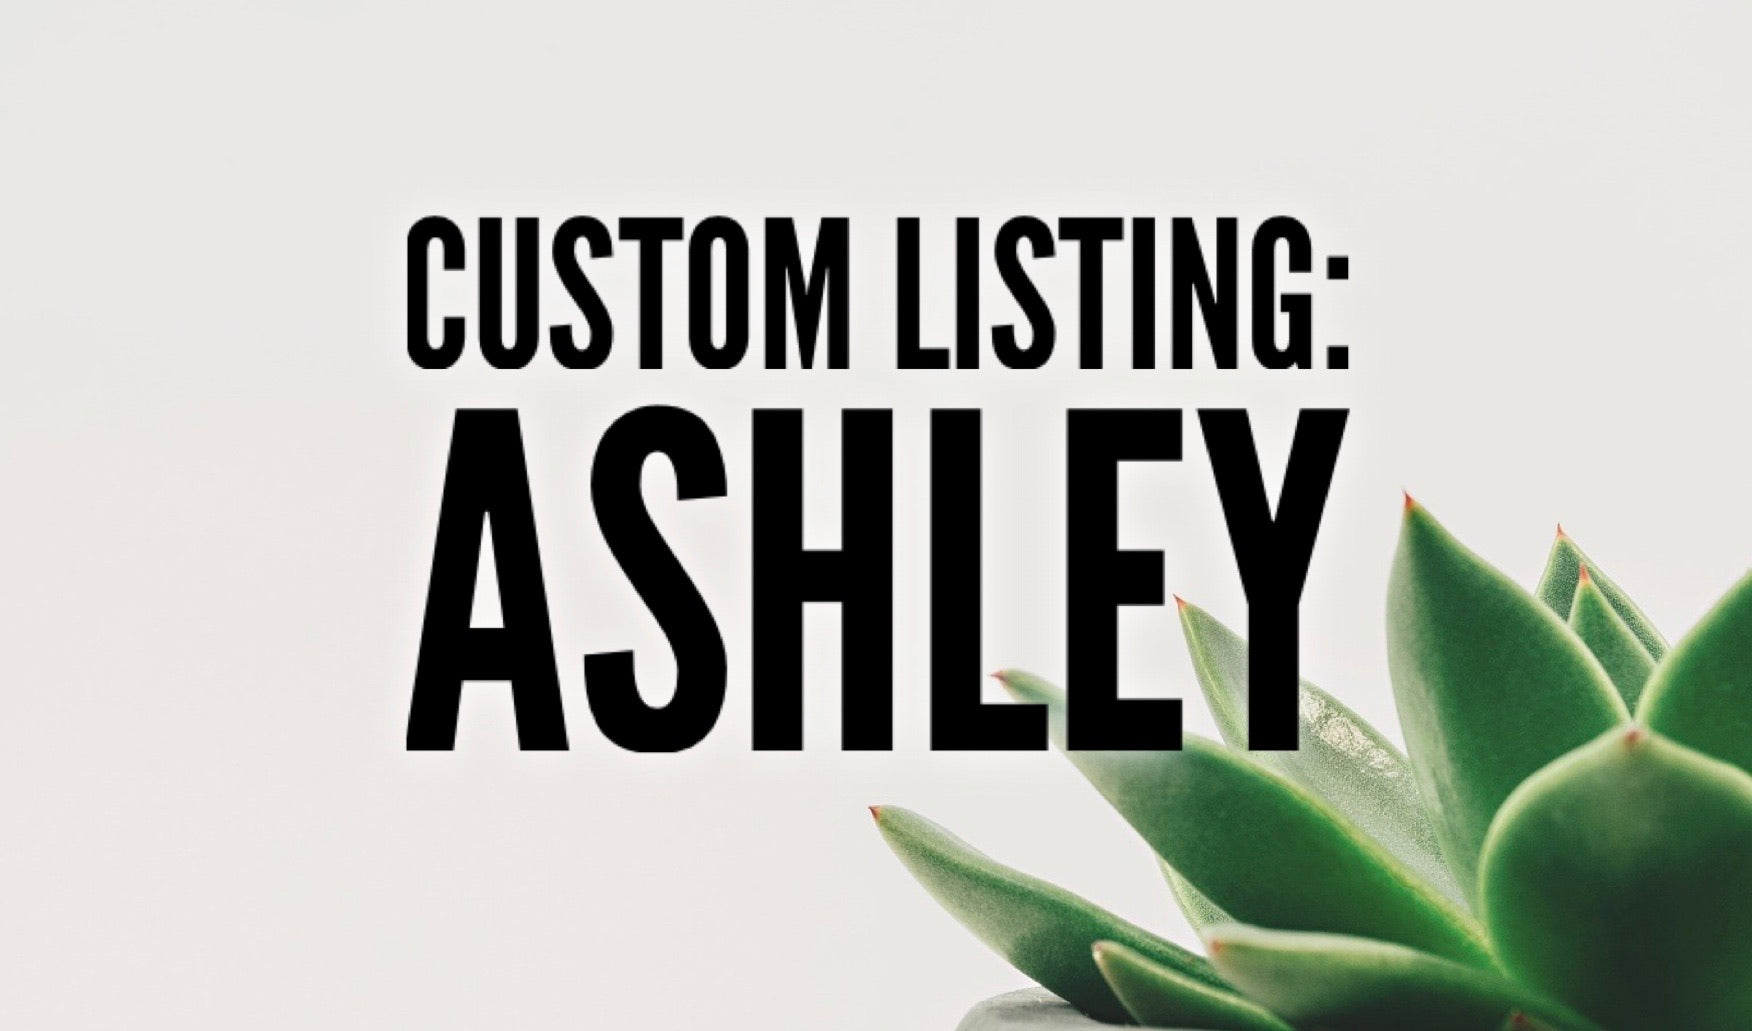 Custom Listing: Ashley